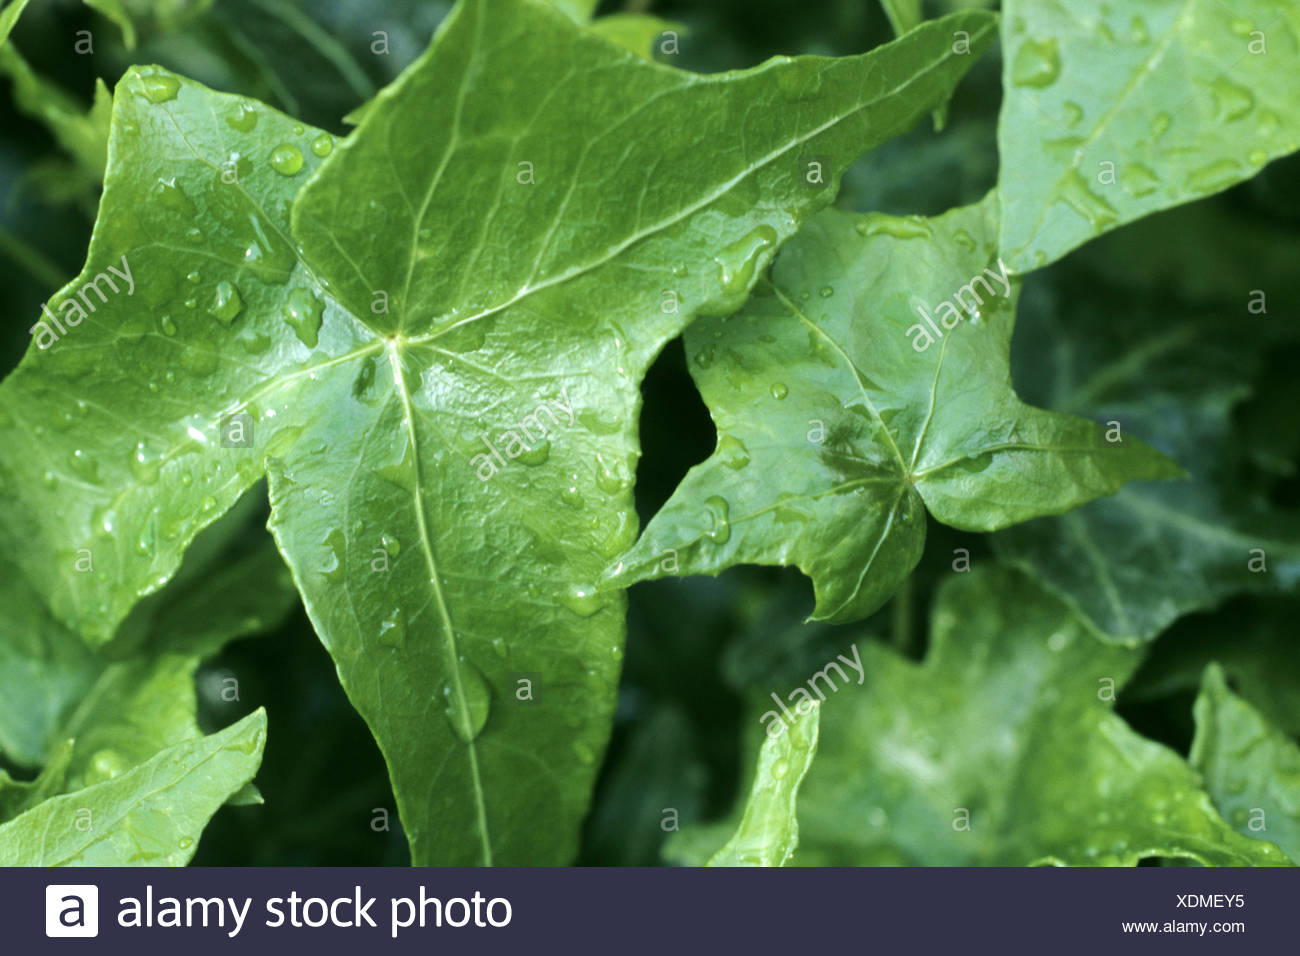 English ivy, common ivy (Hedera helix 'Miss Moror', Hedera helix Miss Moror), cultivar Miss Moror - Stock Image